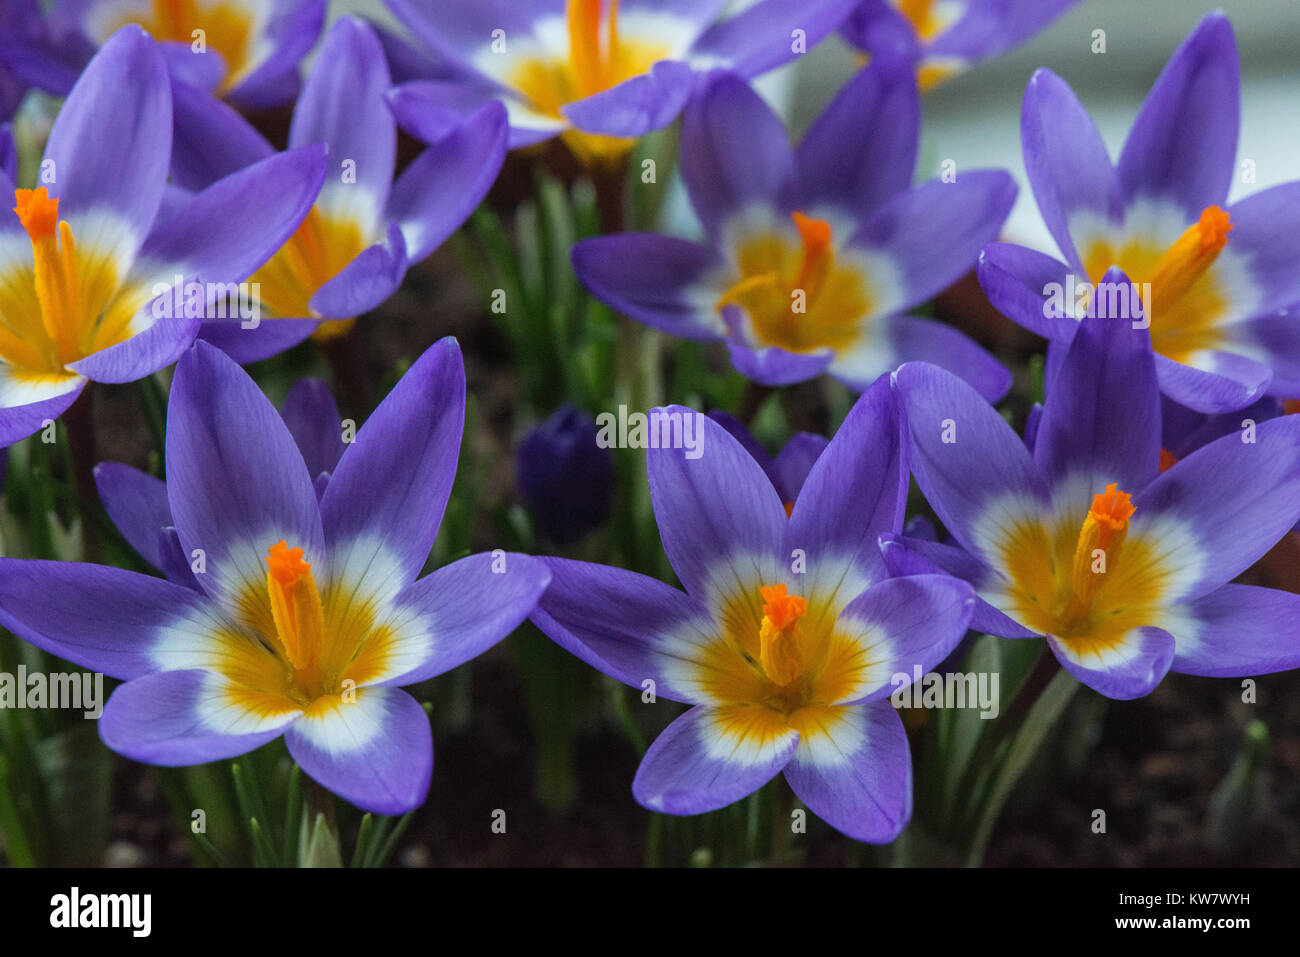 The Lilac And Yellow Early Spring Flowers Of The Crocus In Close Up